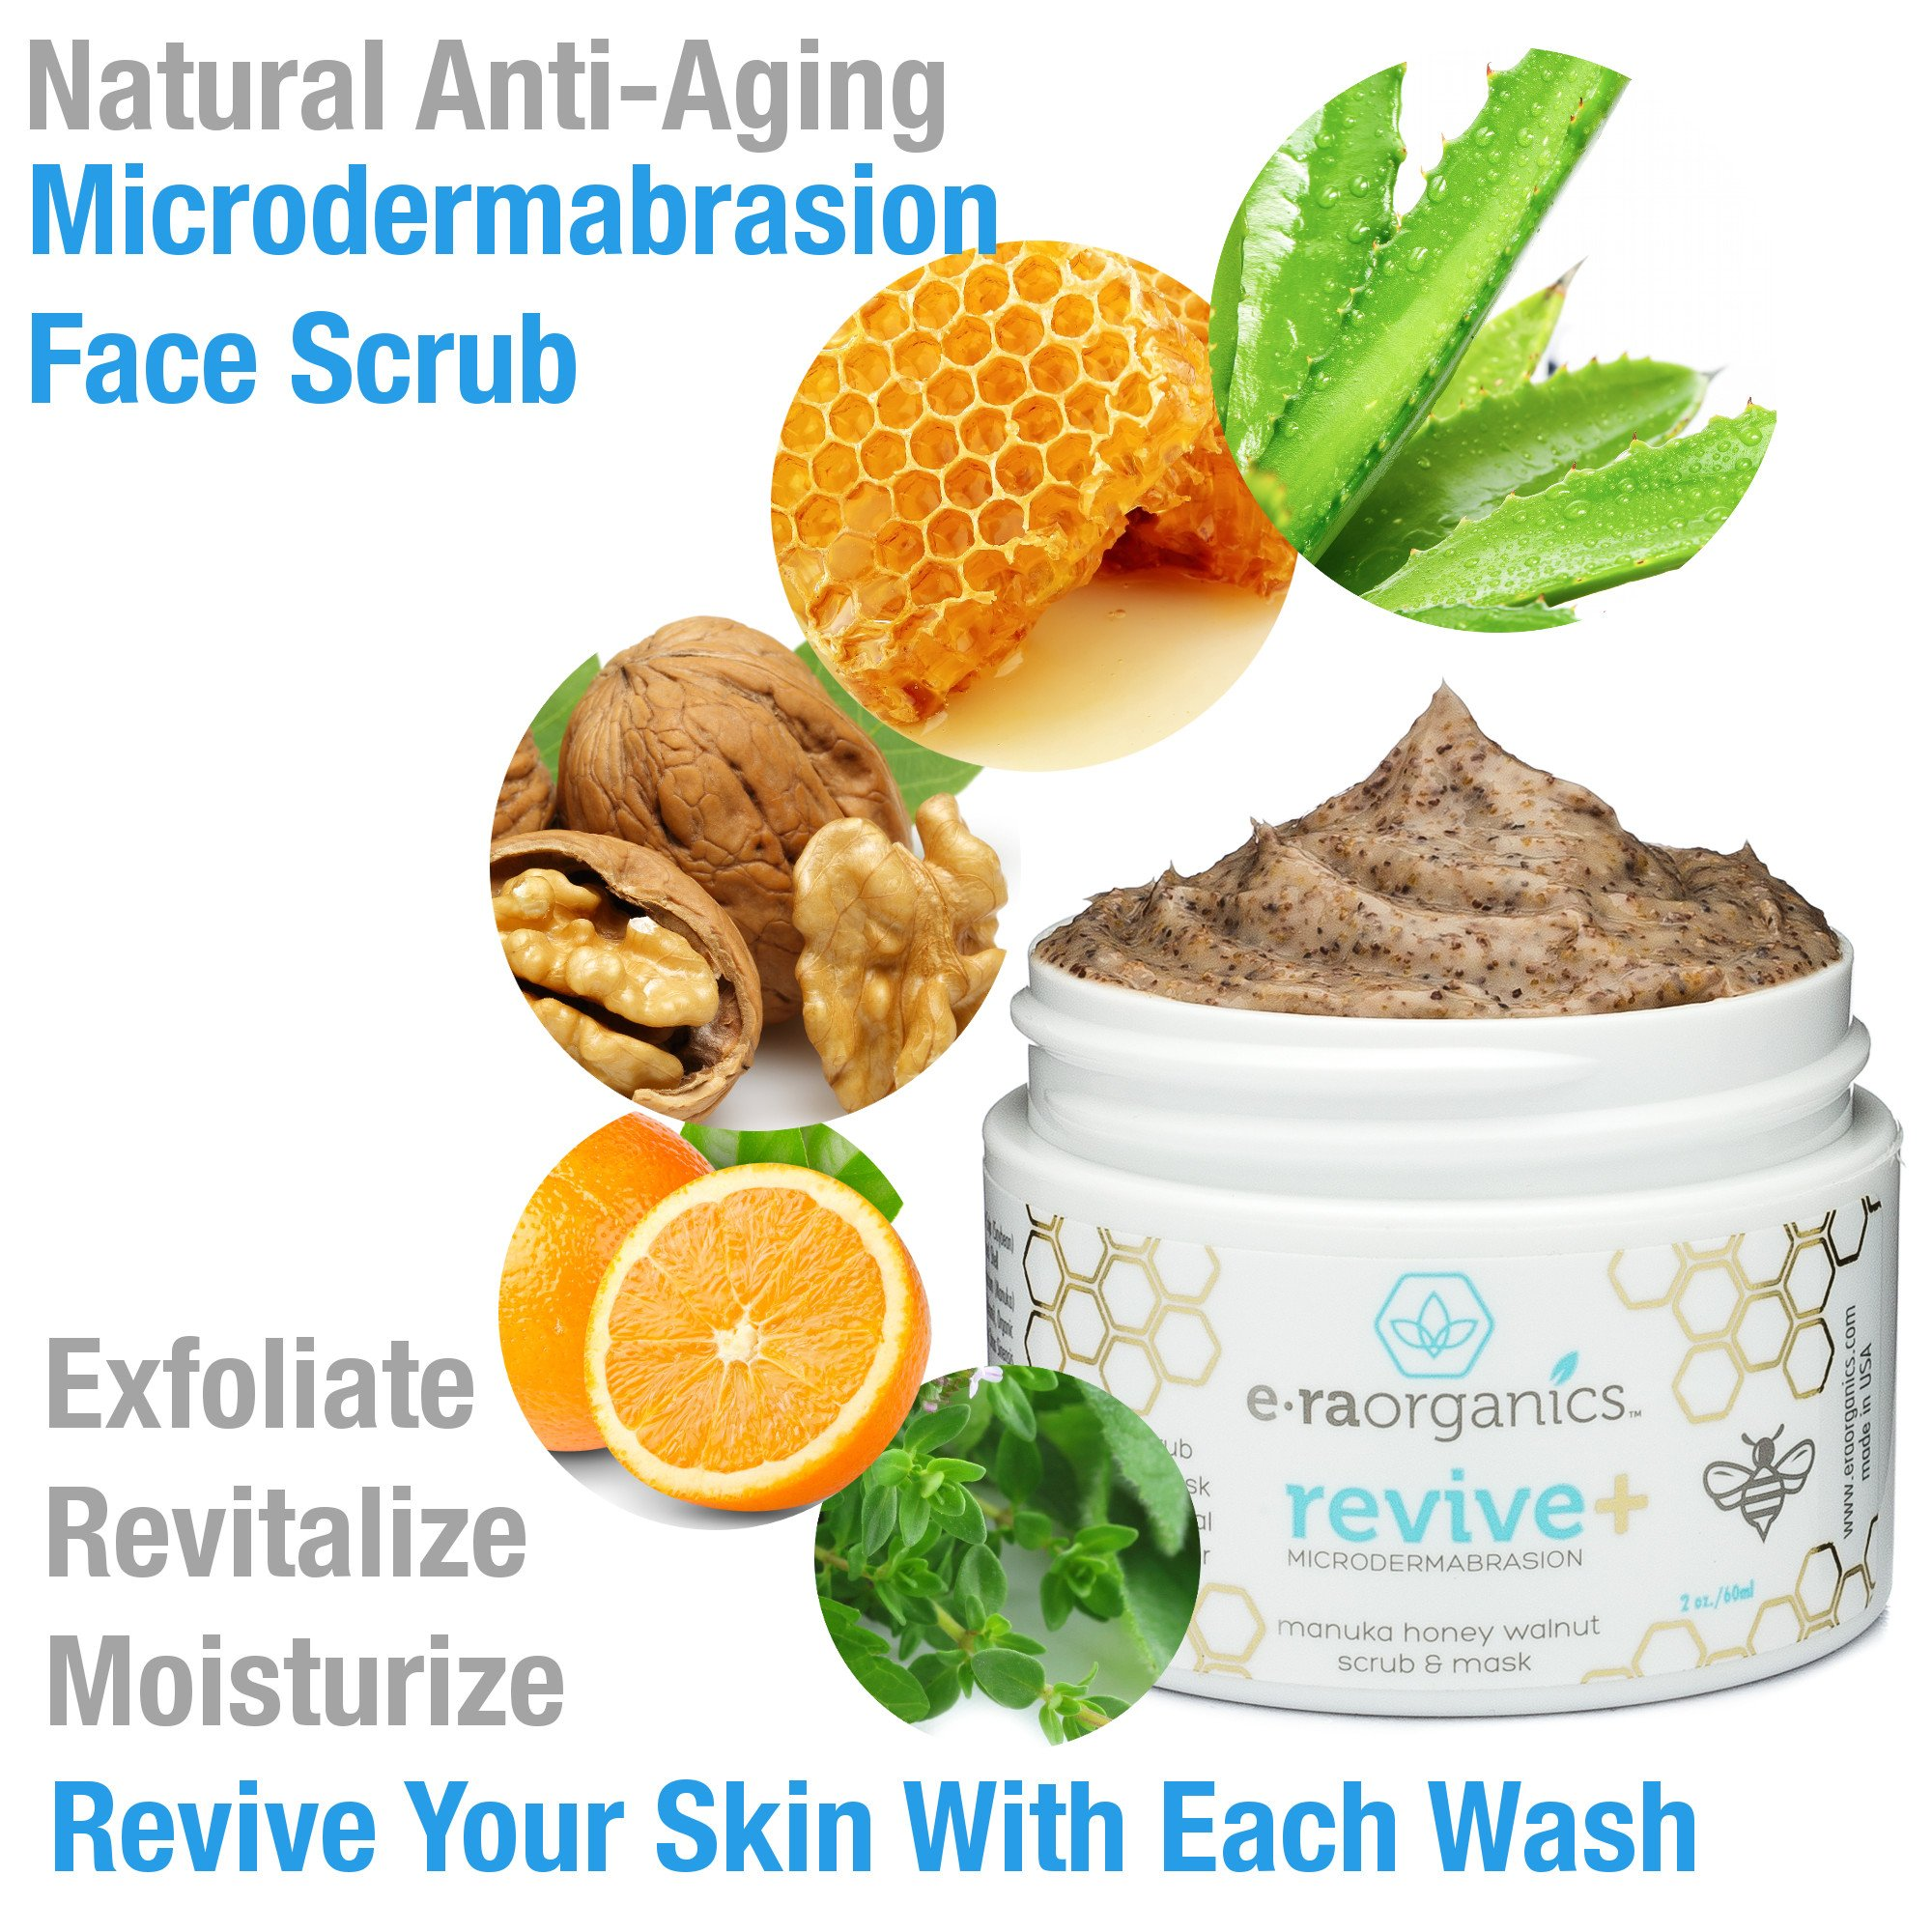 Microdermabrasion Facial Scrub & Face Exfoliator - Natural Exfoliating Face Mask with Manuka Honey & Walnut - Moisturizing Facial Exfoliant for Dull Dry Skin, Wrinkles, Acne Scars & More 2.0oz/56.6g by Era Organics (Image #2)